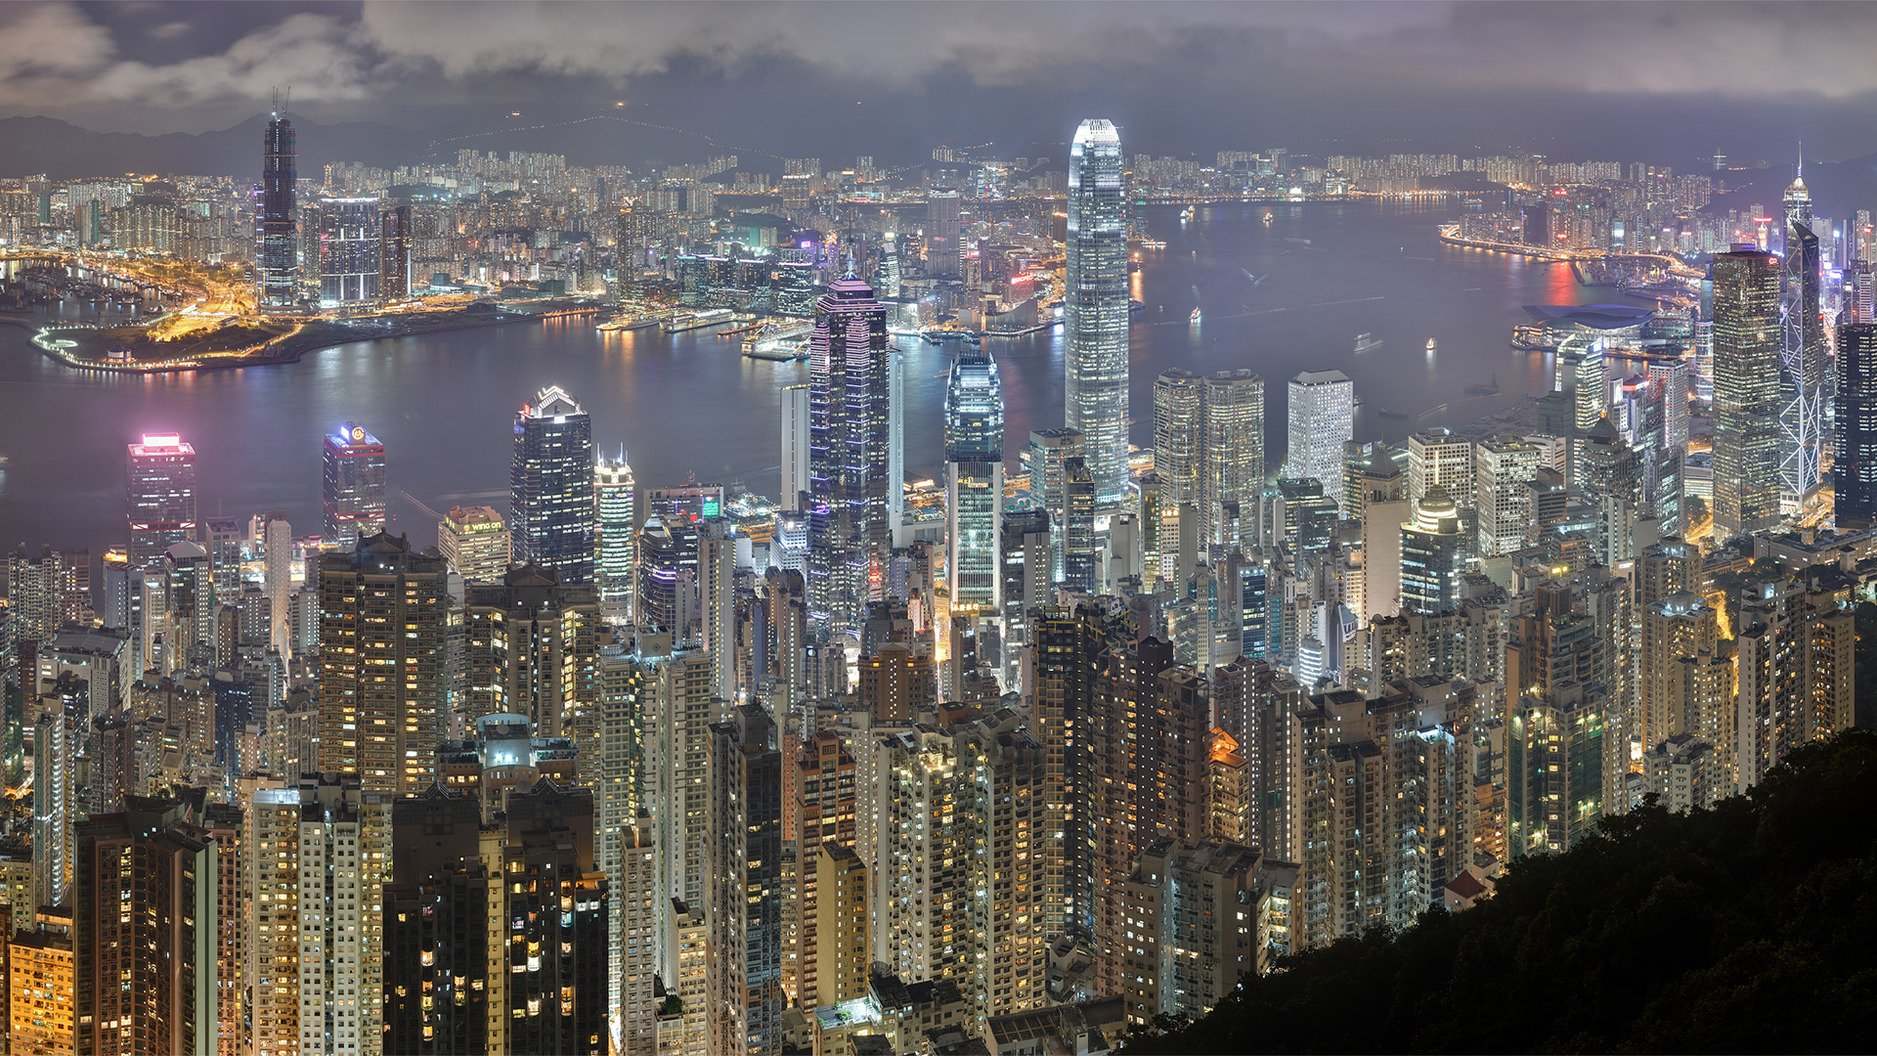 4k-ultra-hd-wallpaper-Hong-Kong-unabuenaidea.es (11)